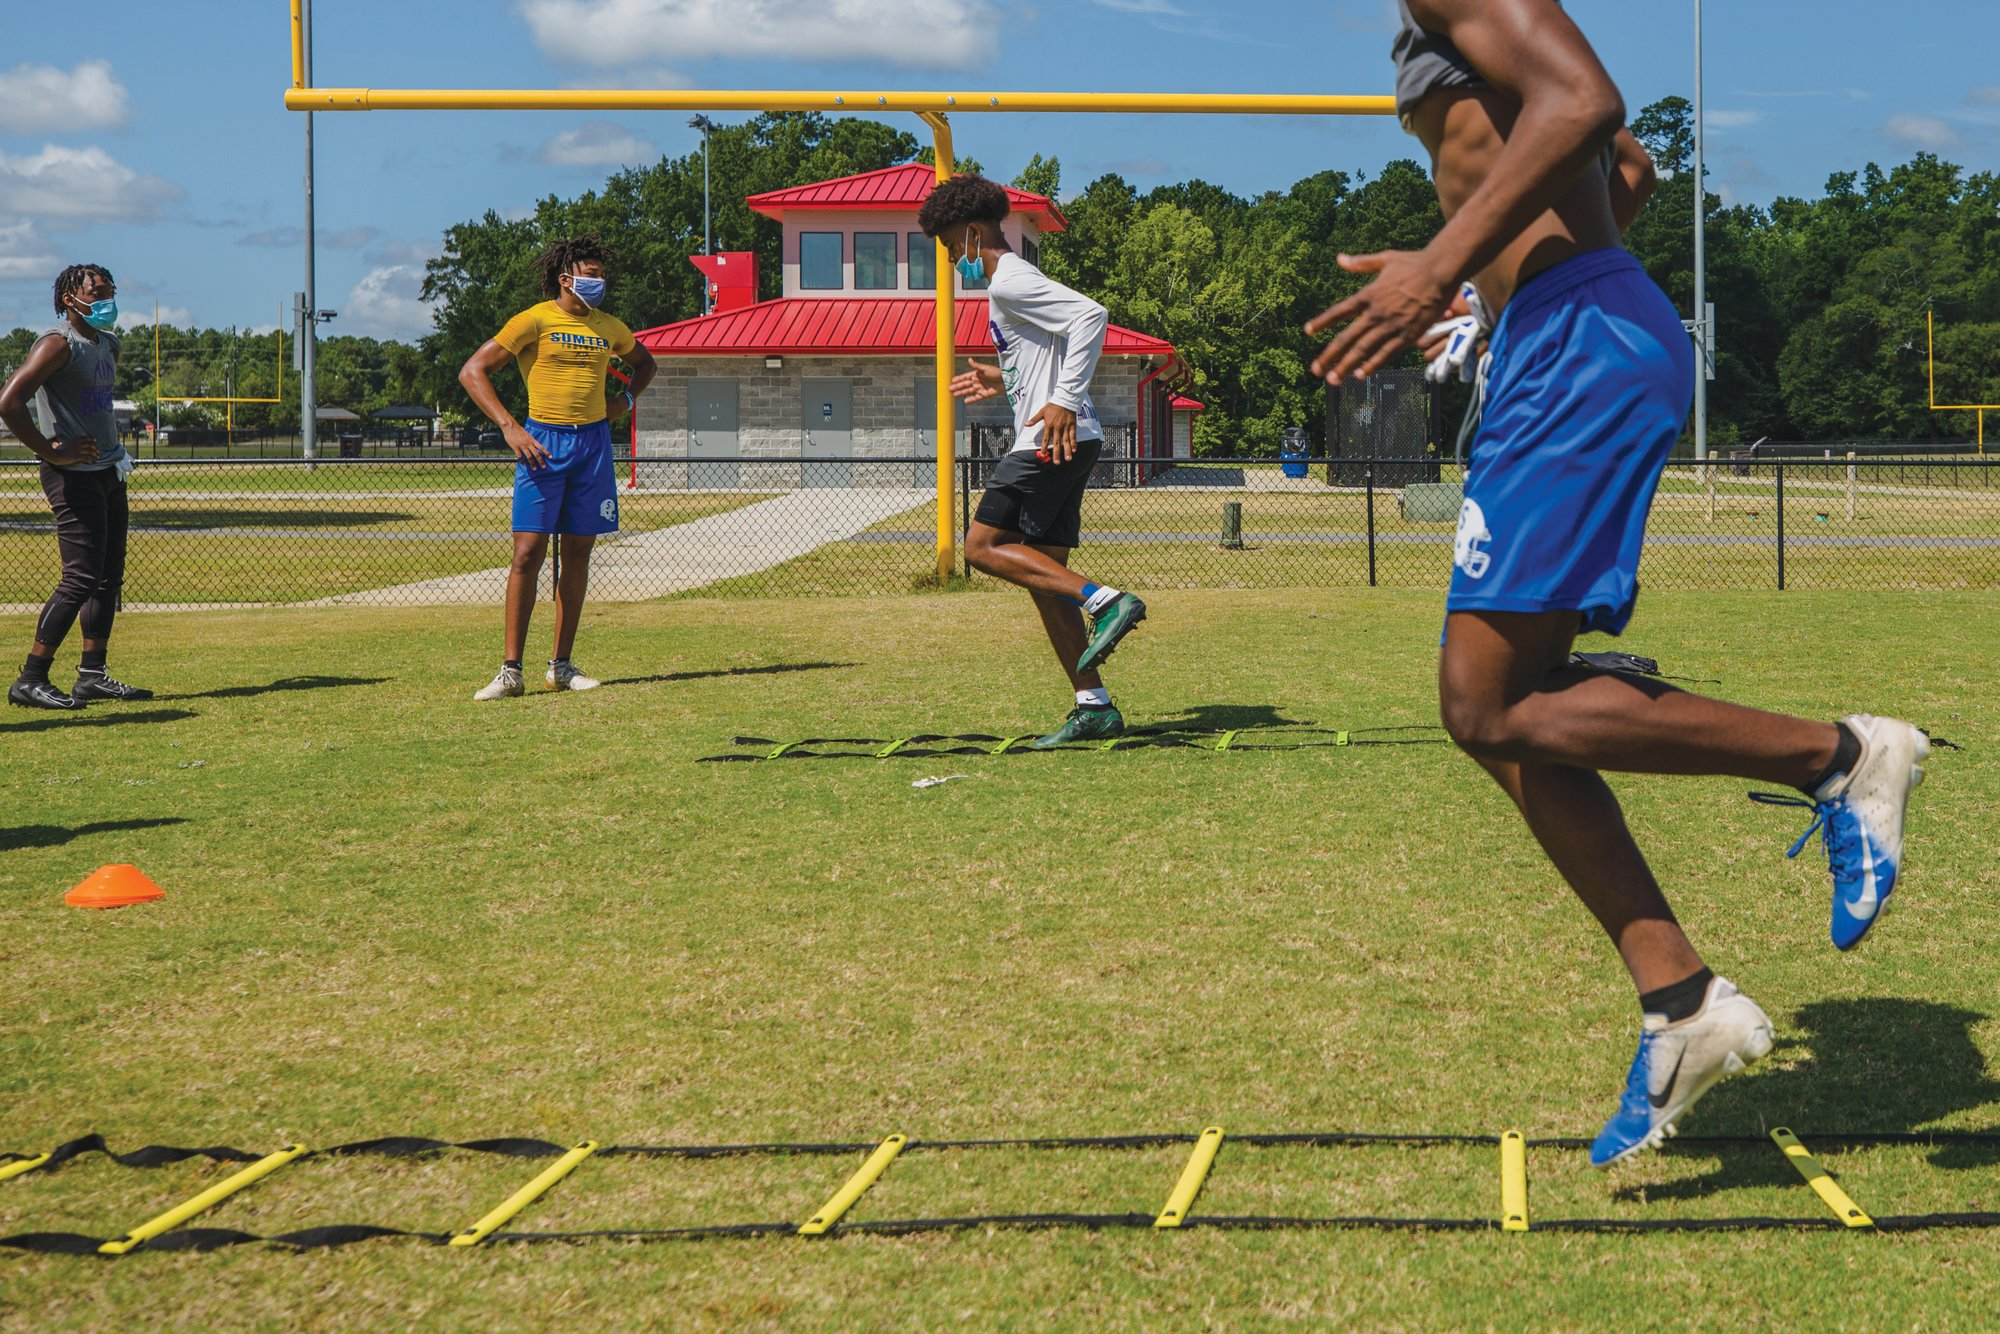 Athletes from Sumter School District are working out together as they wait for permission to have organized team workouts. The South Carolina High School League approved start date for football practices, which was originally Aug. 17, has been pushed back to Sept. 8.